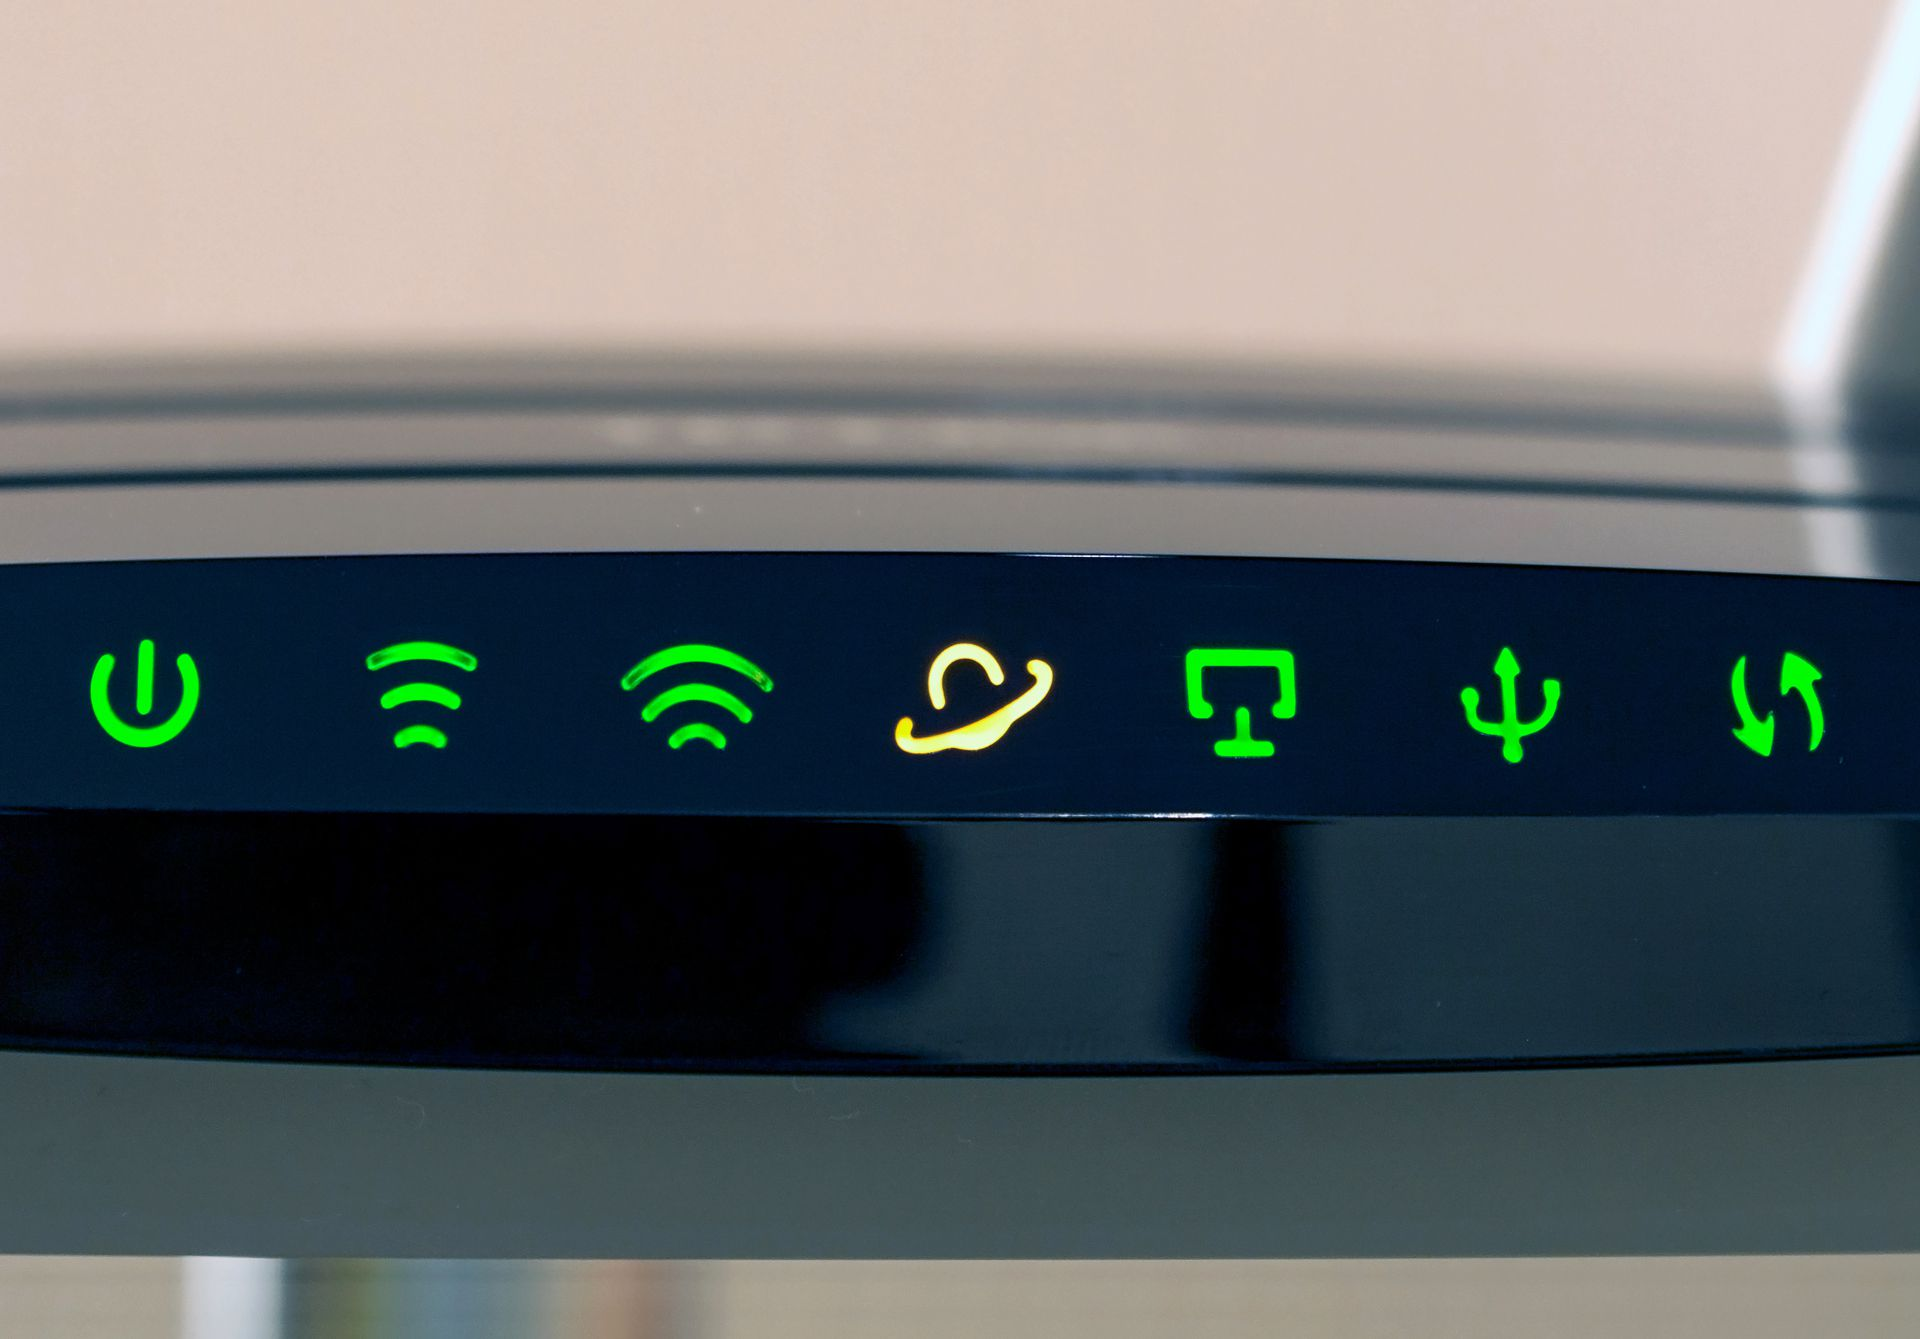 Modem and router symbols and lights.